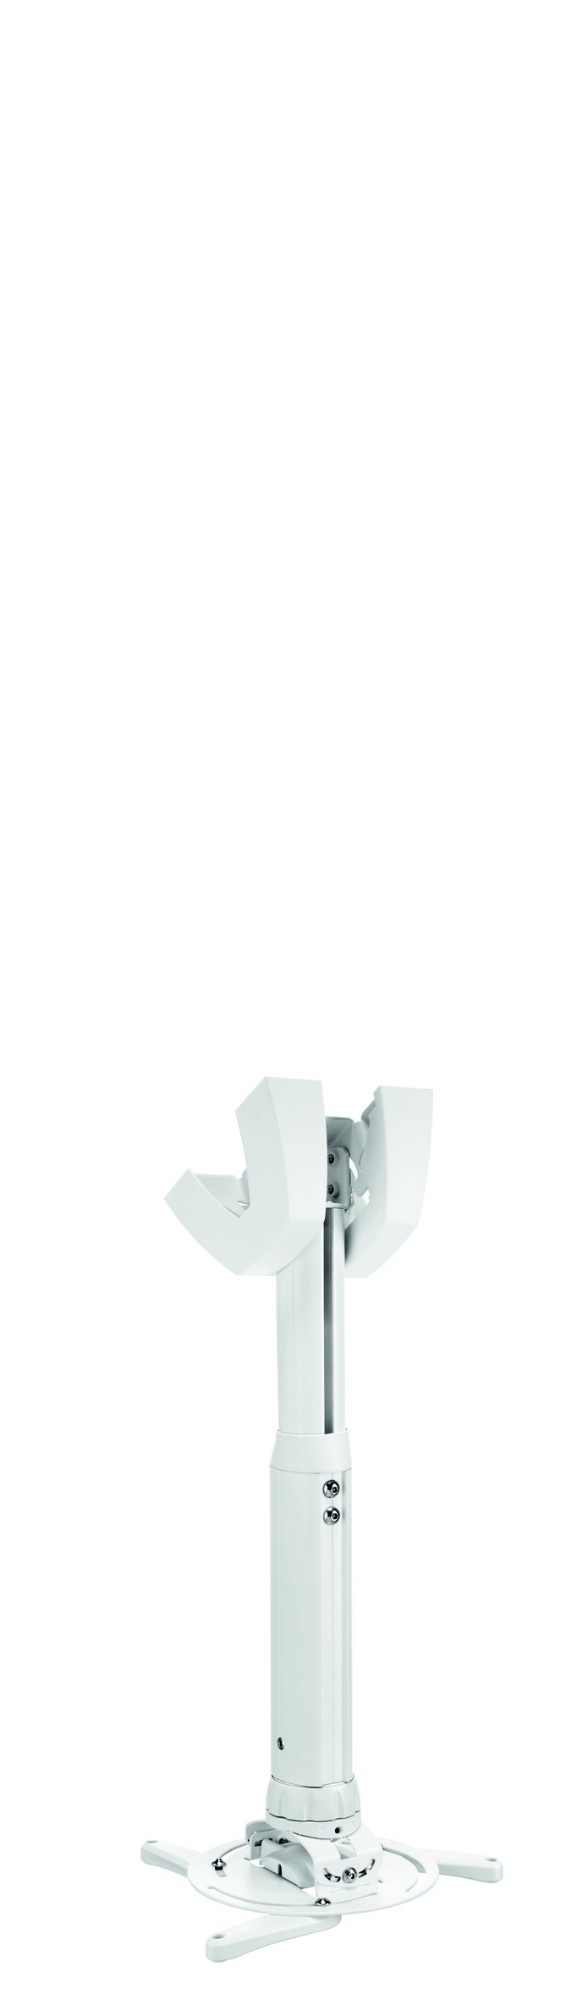 Vogel's PPC 1540 Projector ceiling mount white